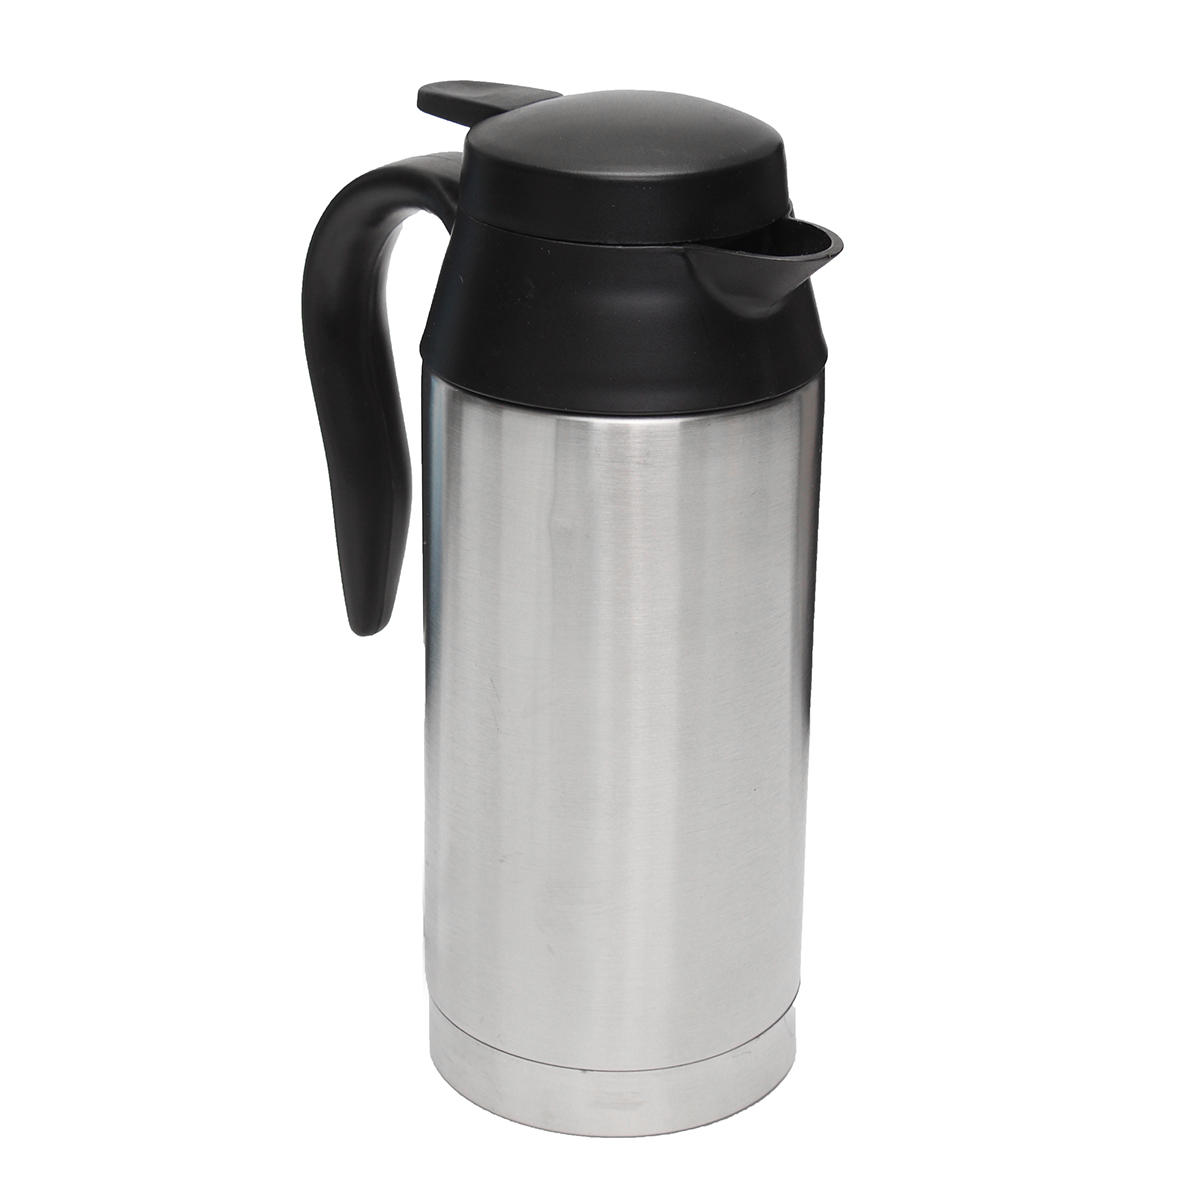 12v 750ml Stainless Steel Electric In Car Kettle Travel Heating Water Bottle Cod